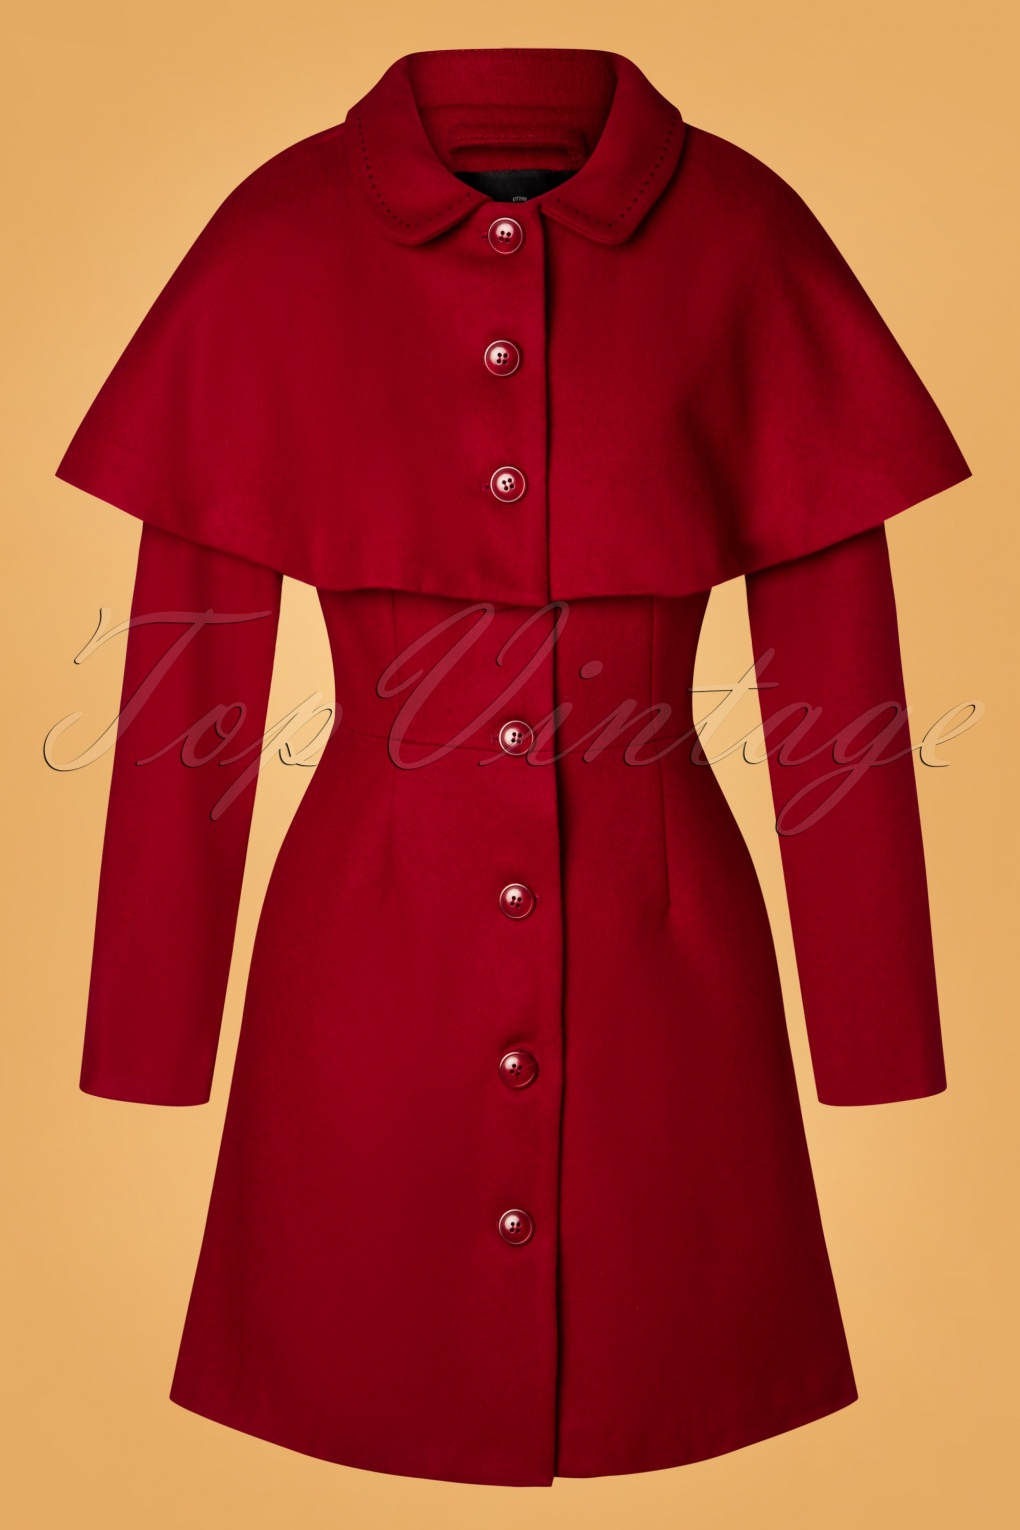 Shop Queen's Gambit Outfits – 60s Clothes 60s Haddie Cape Coat in Red £149.20 AT vintagedancer.com